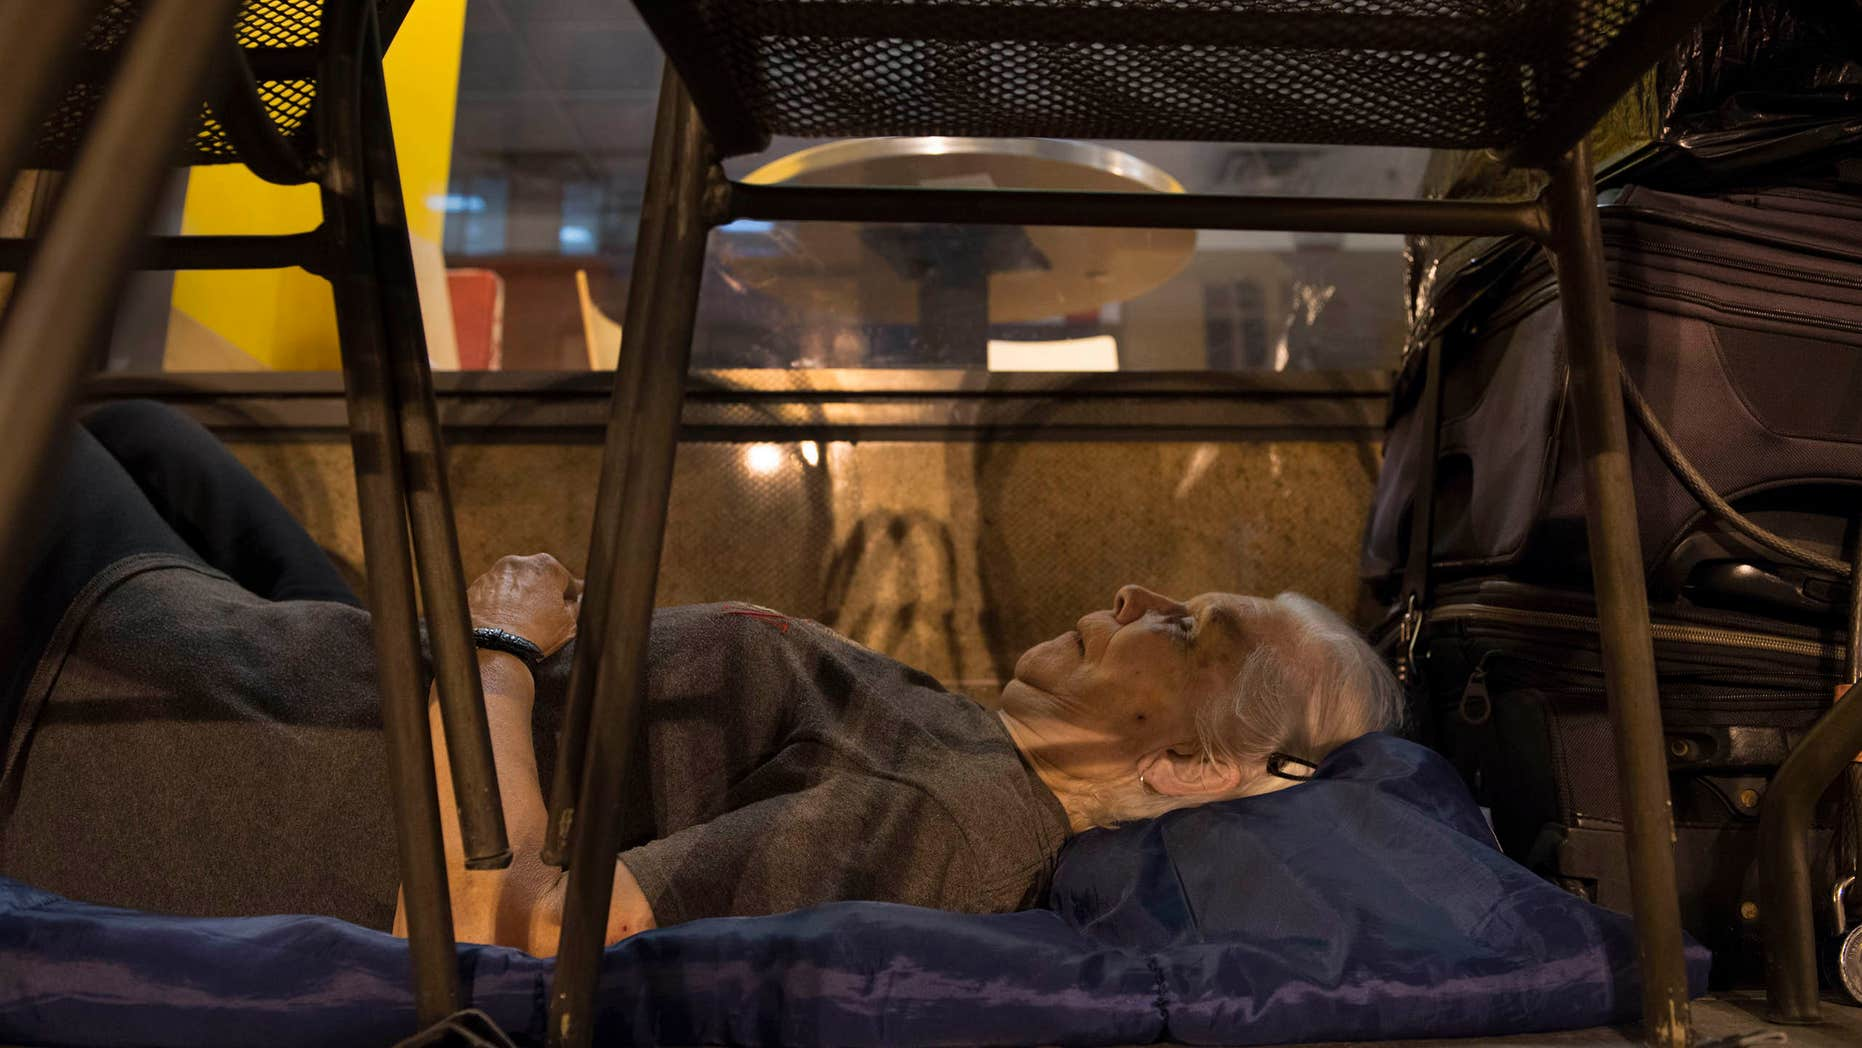 In this Aug. 10, 2016 photo, with suitcases in arms reach, homeless woman Wanda Witter beds down in her sleeping spot outside the Au Bon Pain on 13th and G Street in Washington, DC Witter, who is 80 years old, was recently attacked at the location suffering a black eye and two stitches.